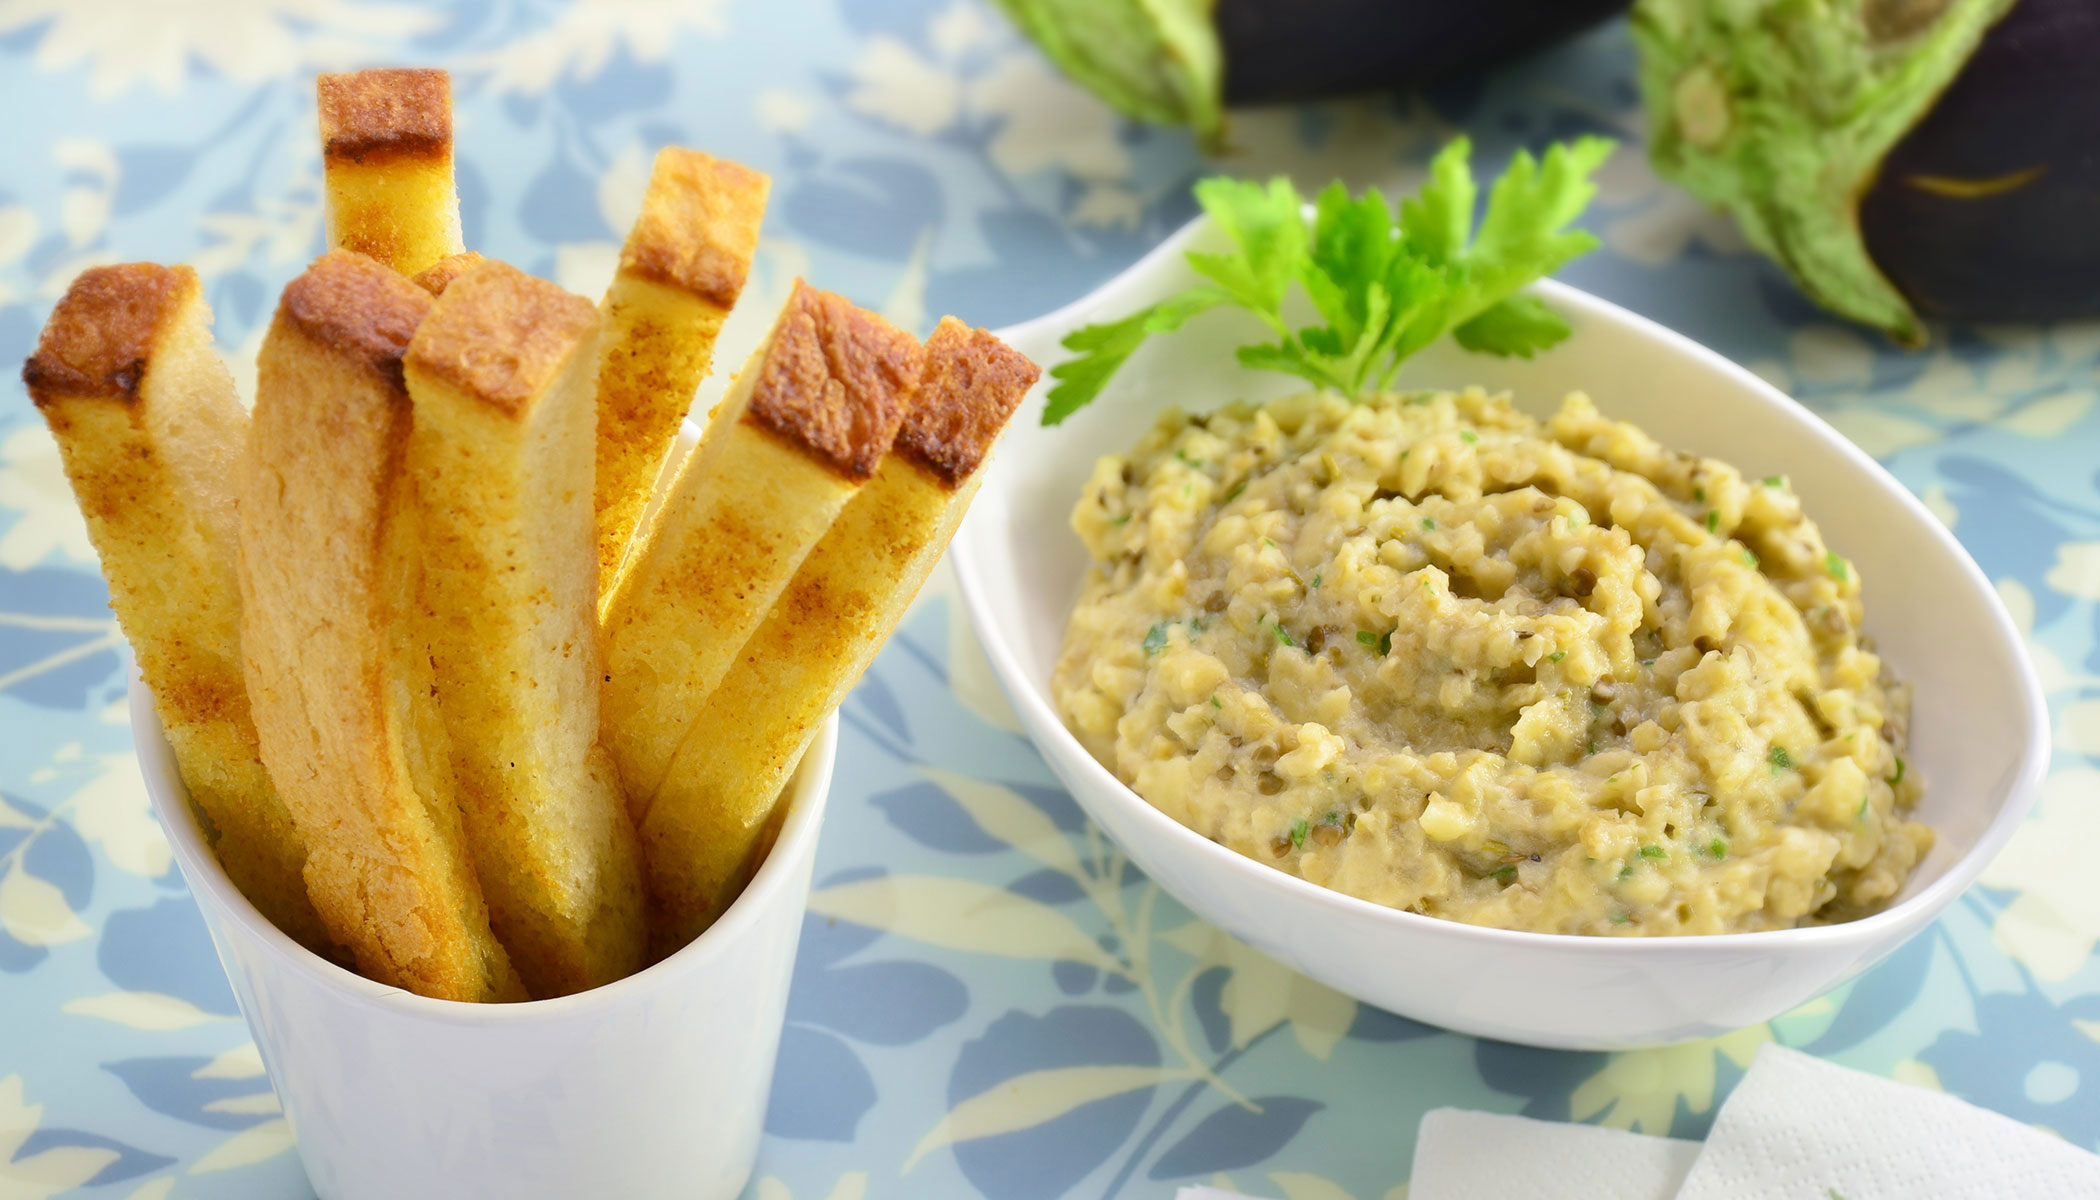 Garlic Rusk Sticks with Eggplant Dip